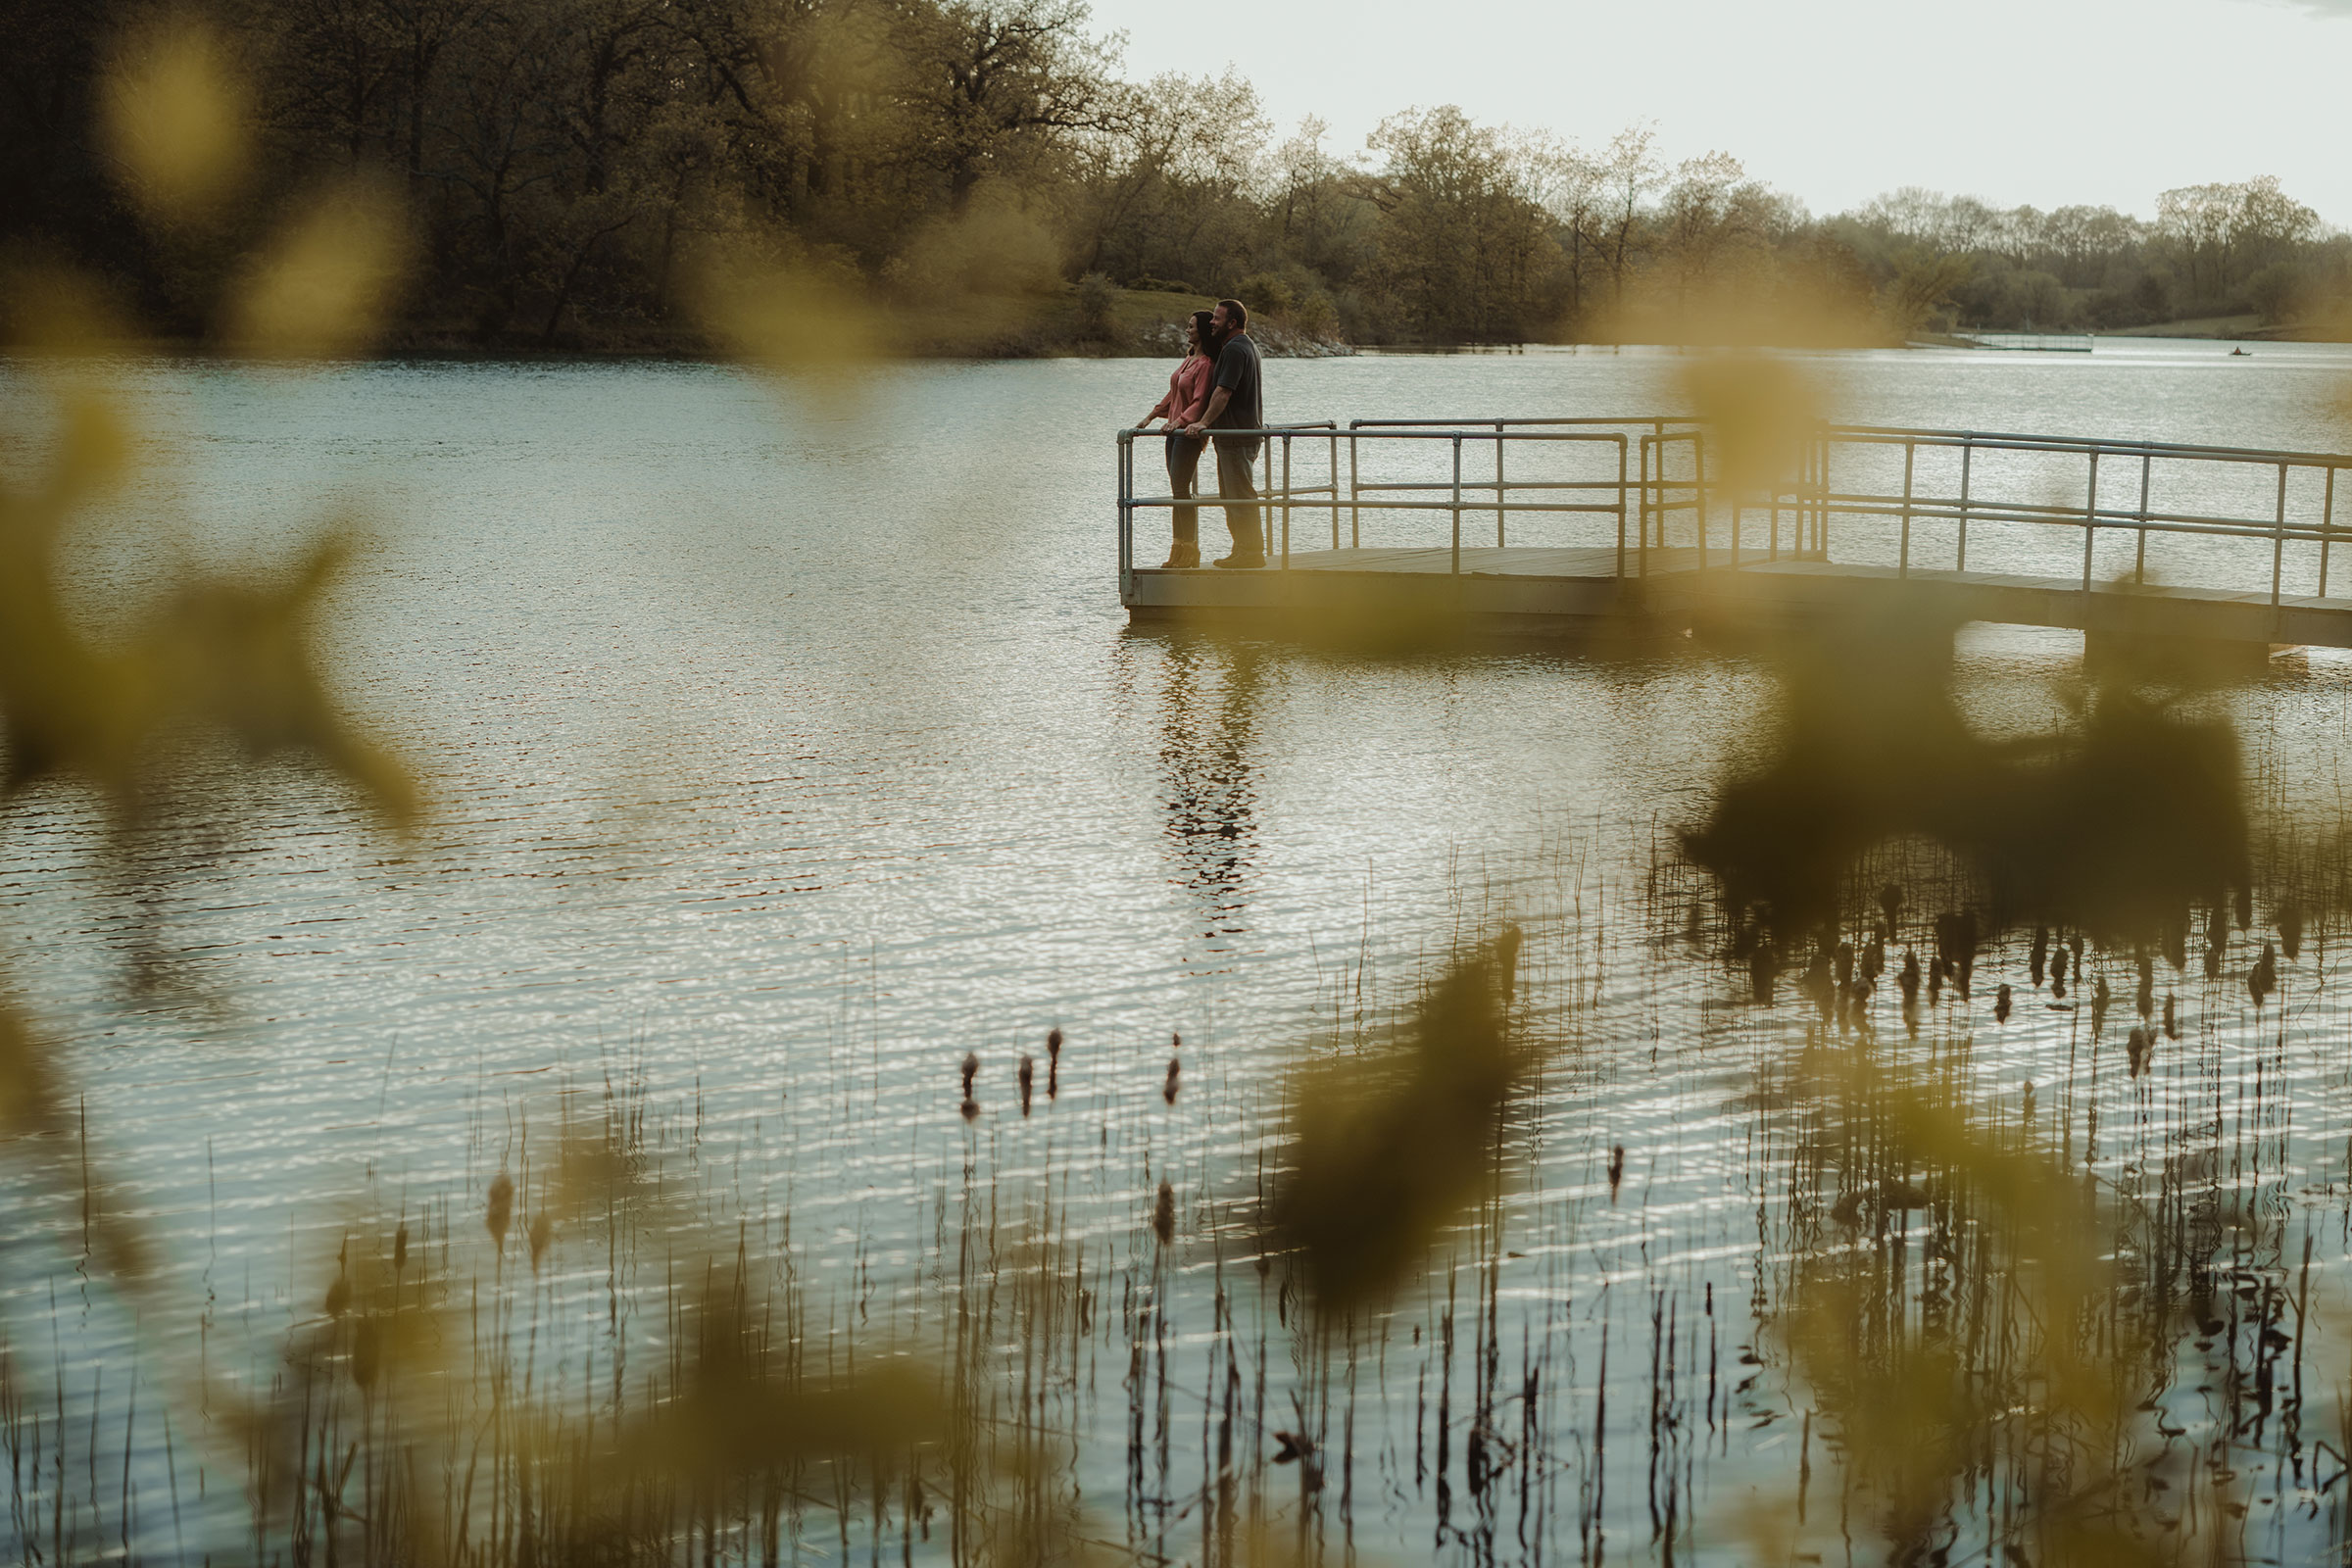 couple-looking-out-on-dock-at-water-while-holding-each-other-engagement-desmoines-iowa-raelyn-ramey-photography.jpg